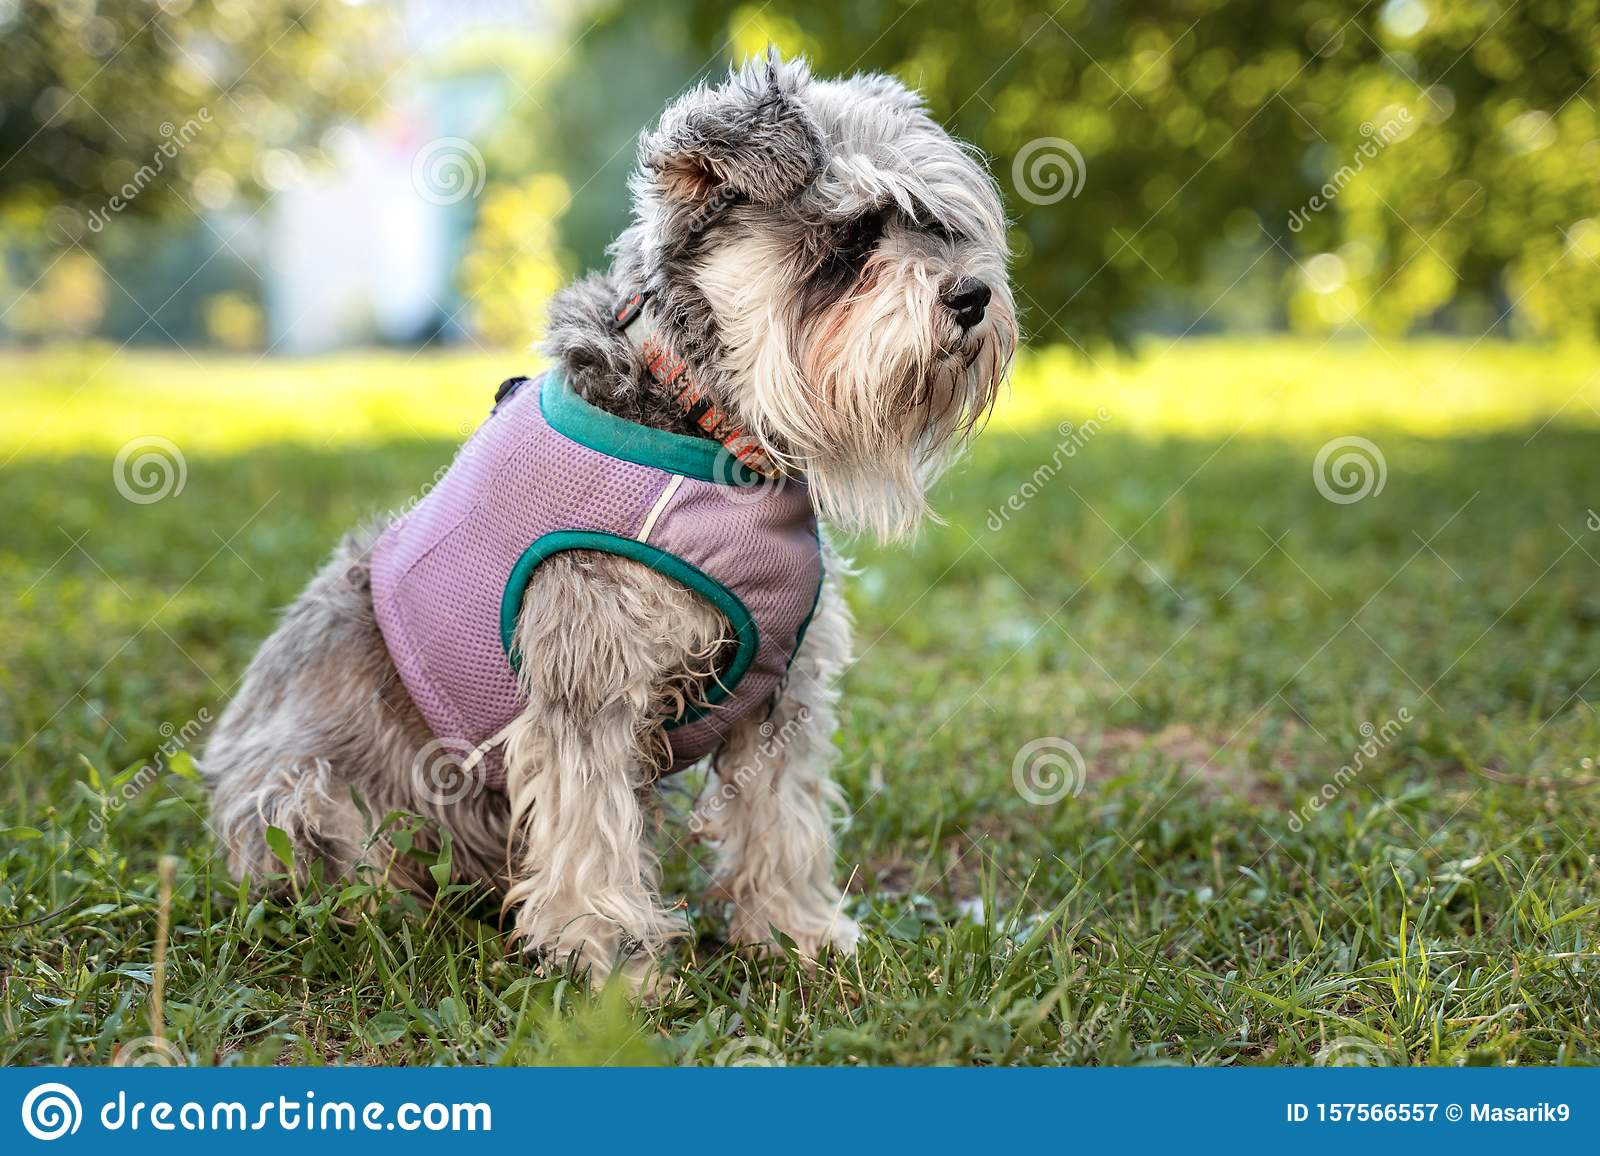 Portrait Of A Cute Dog Miniature Schnauzer Sits On The Grass In The Park Puppy Training And Obedience Stock Image Image Of Outside Training 157566557